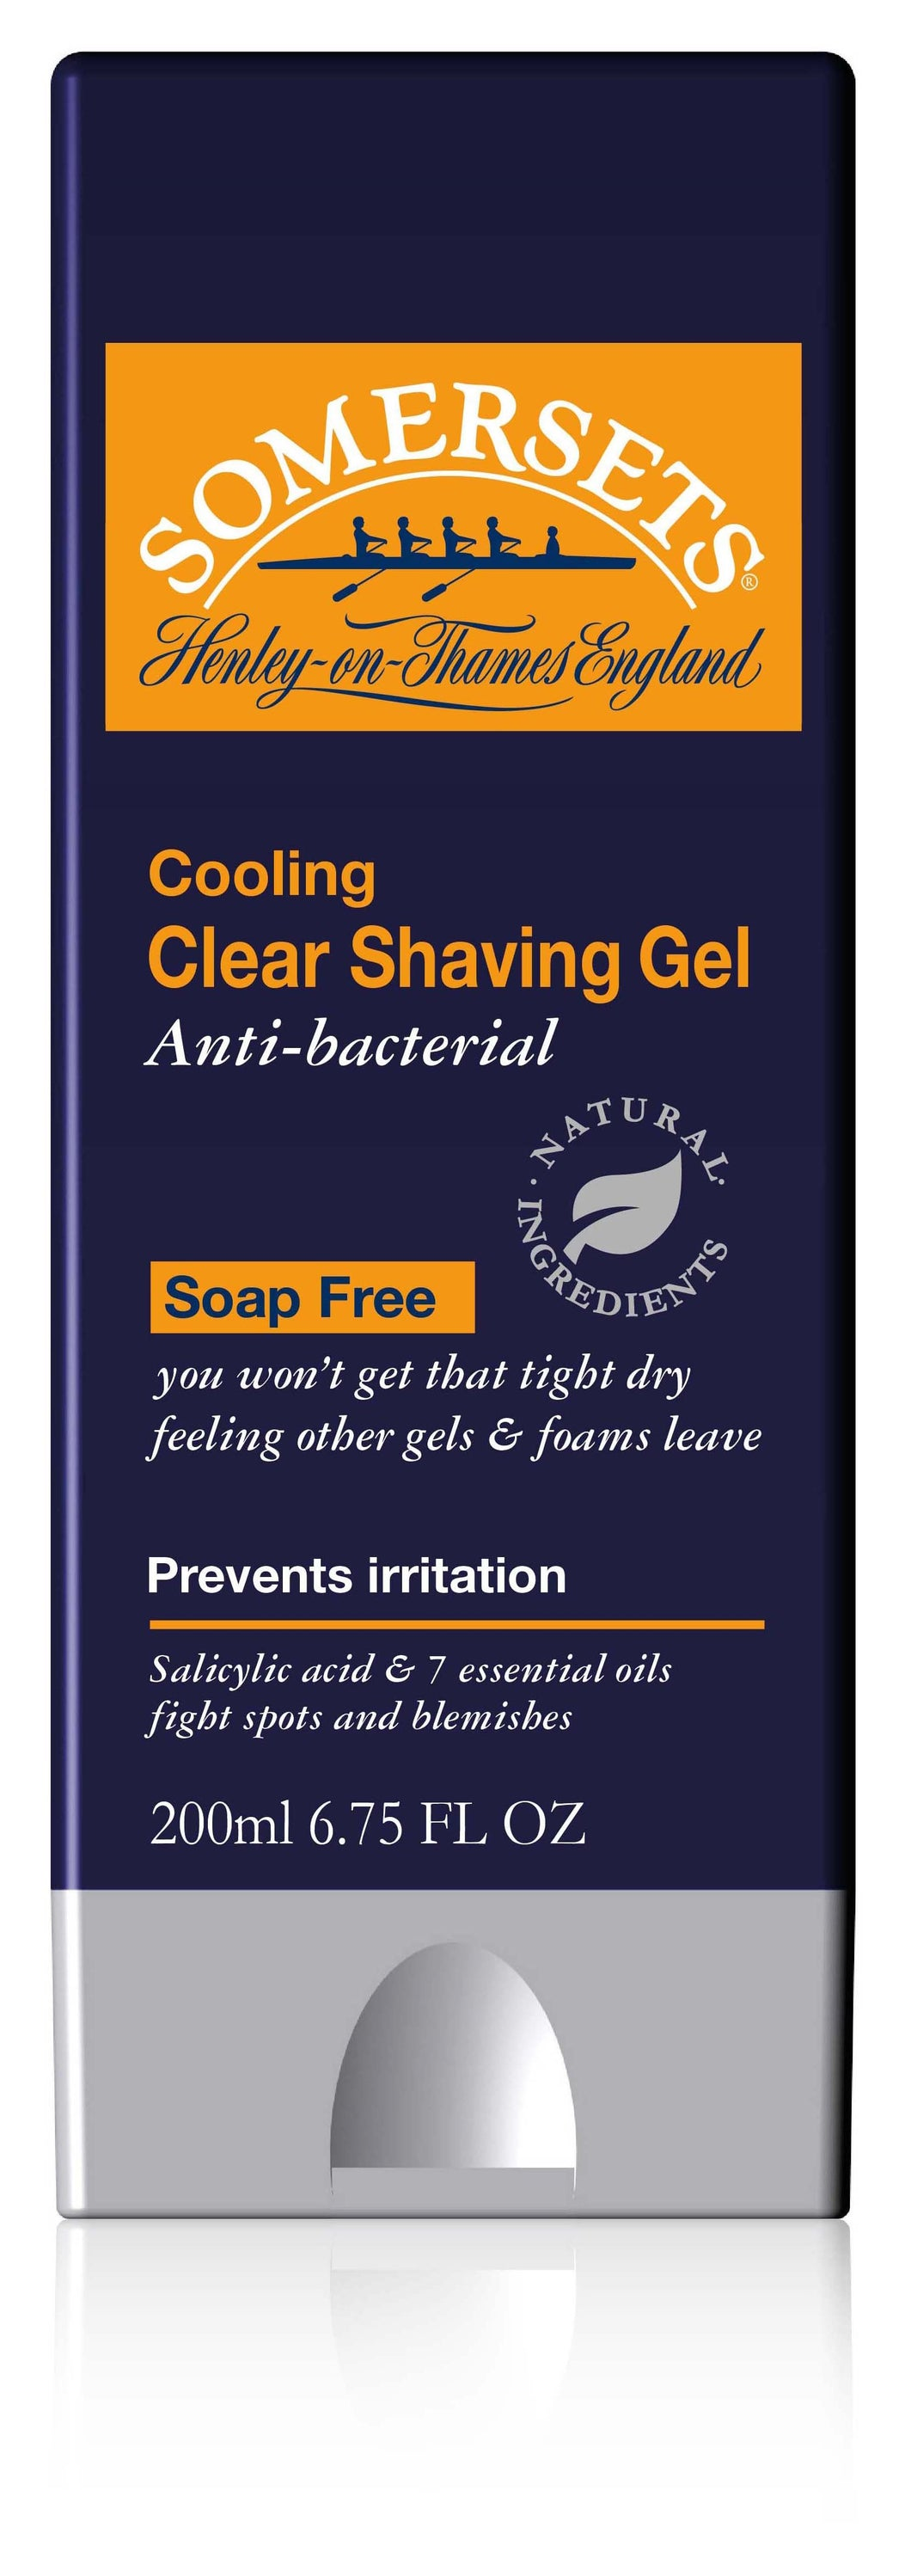 Somersets Anti-bacterial Clear Shaving Gel 200ml